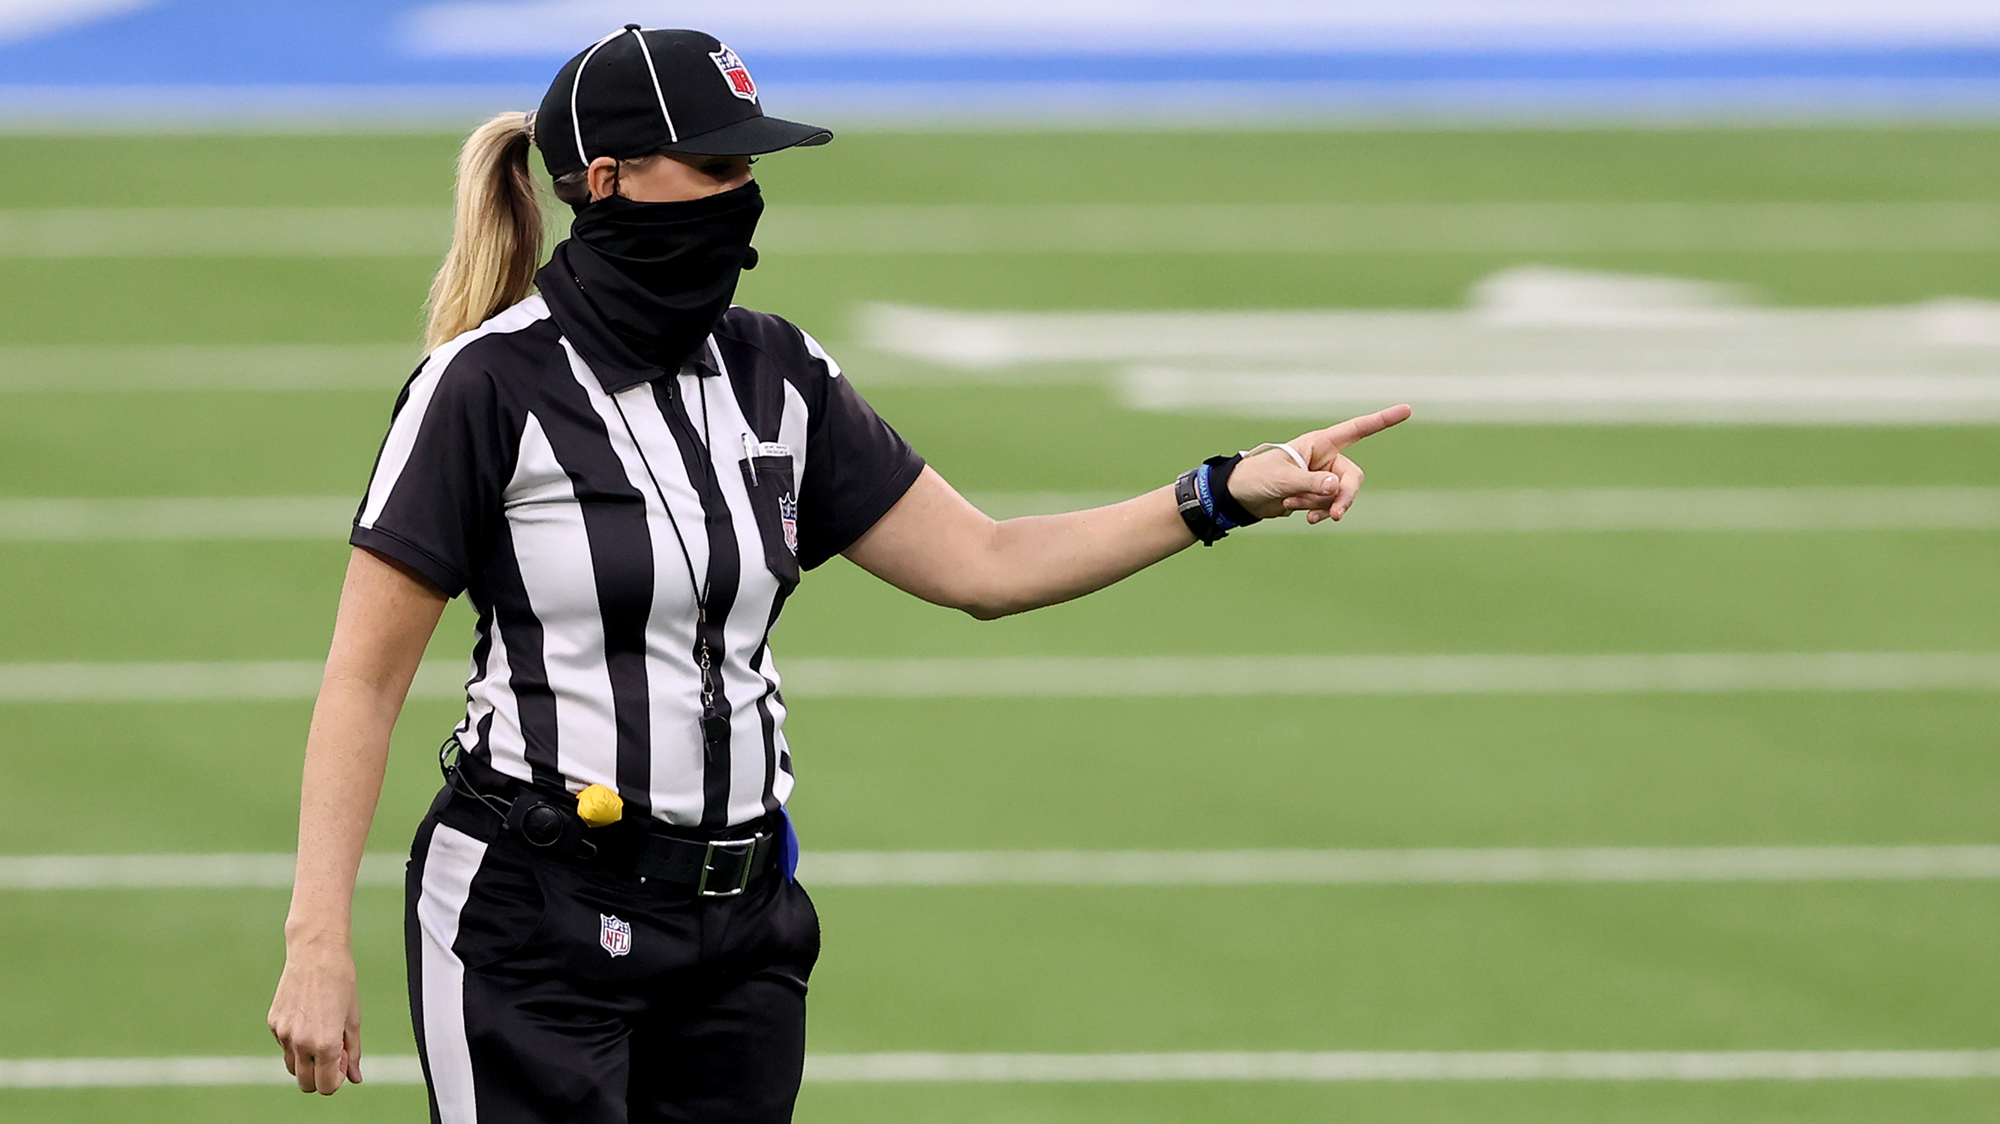 Thomas to become first woman official in Super Bowl history